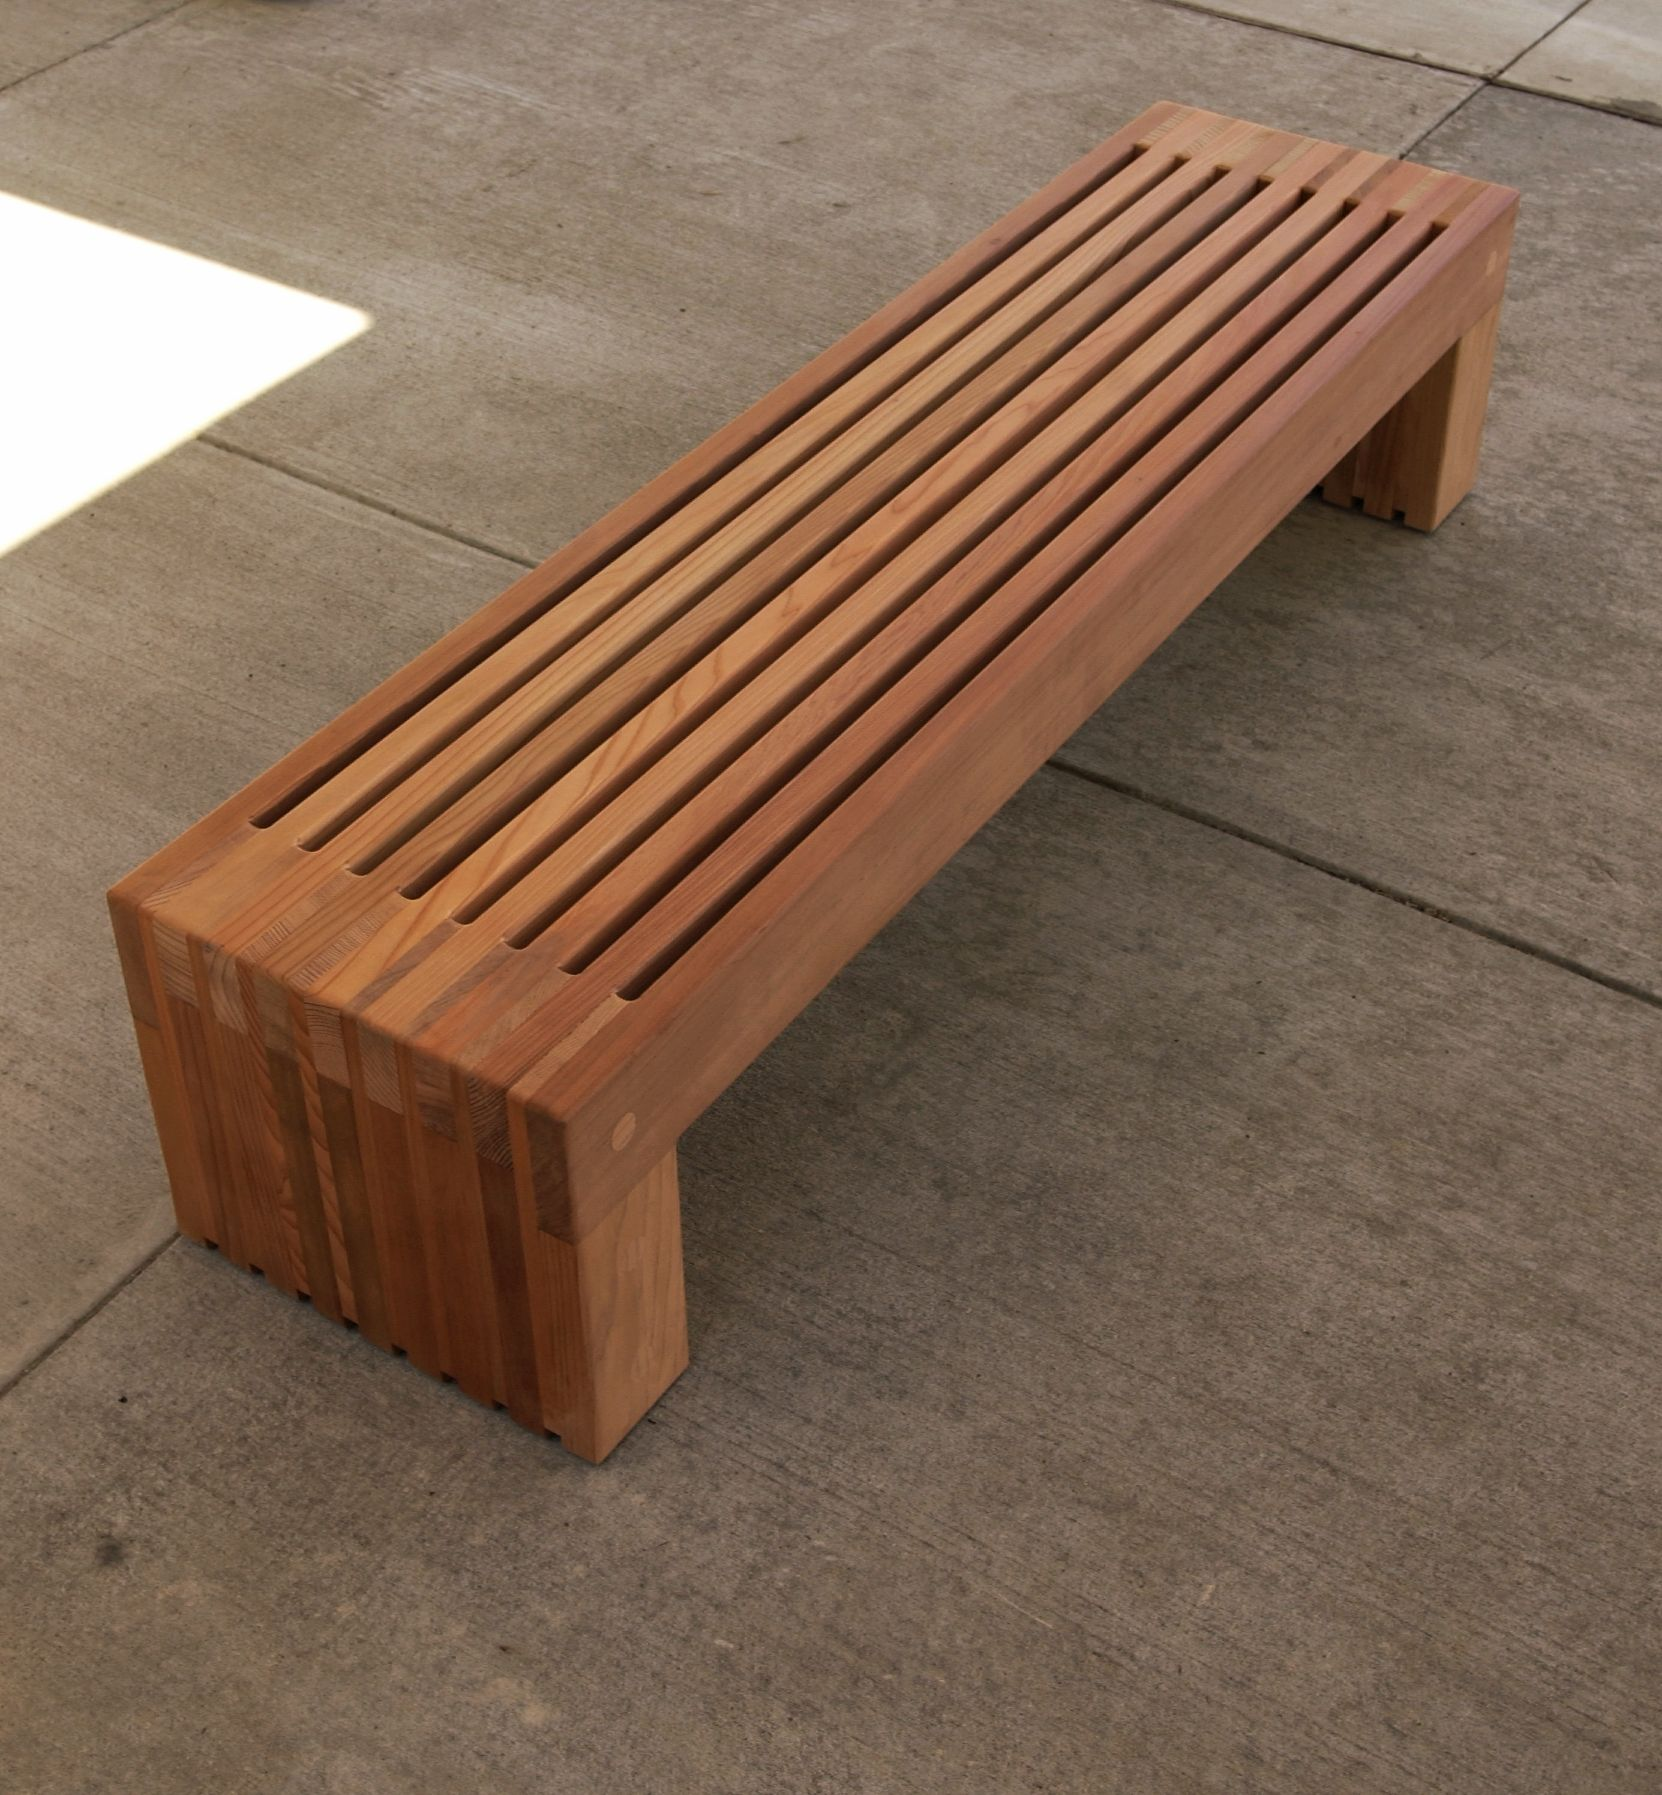 Contemporary garden bench plans